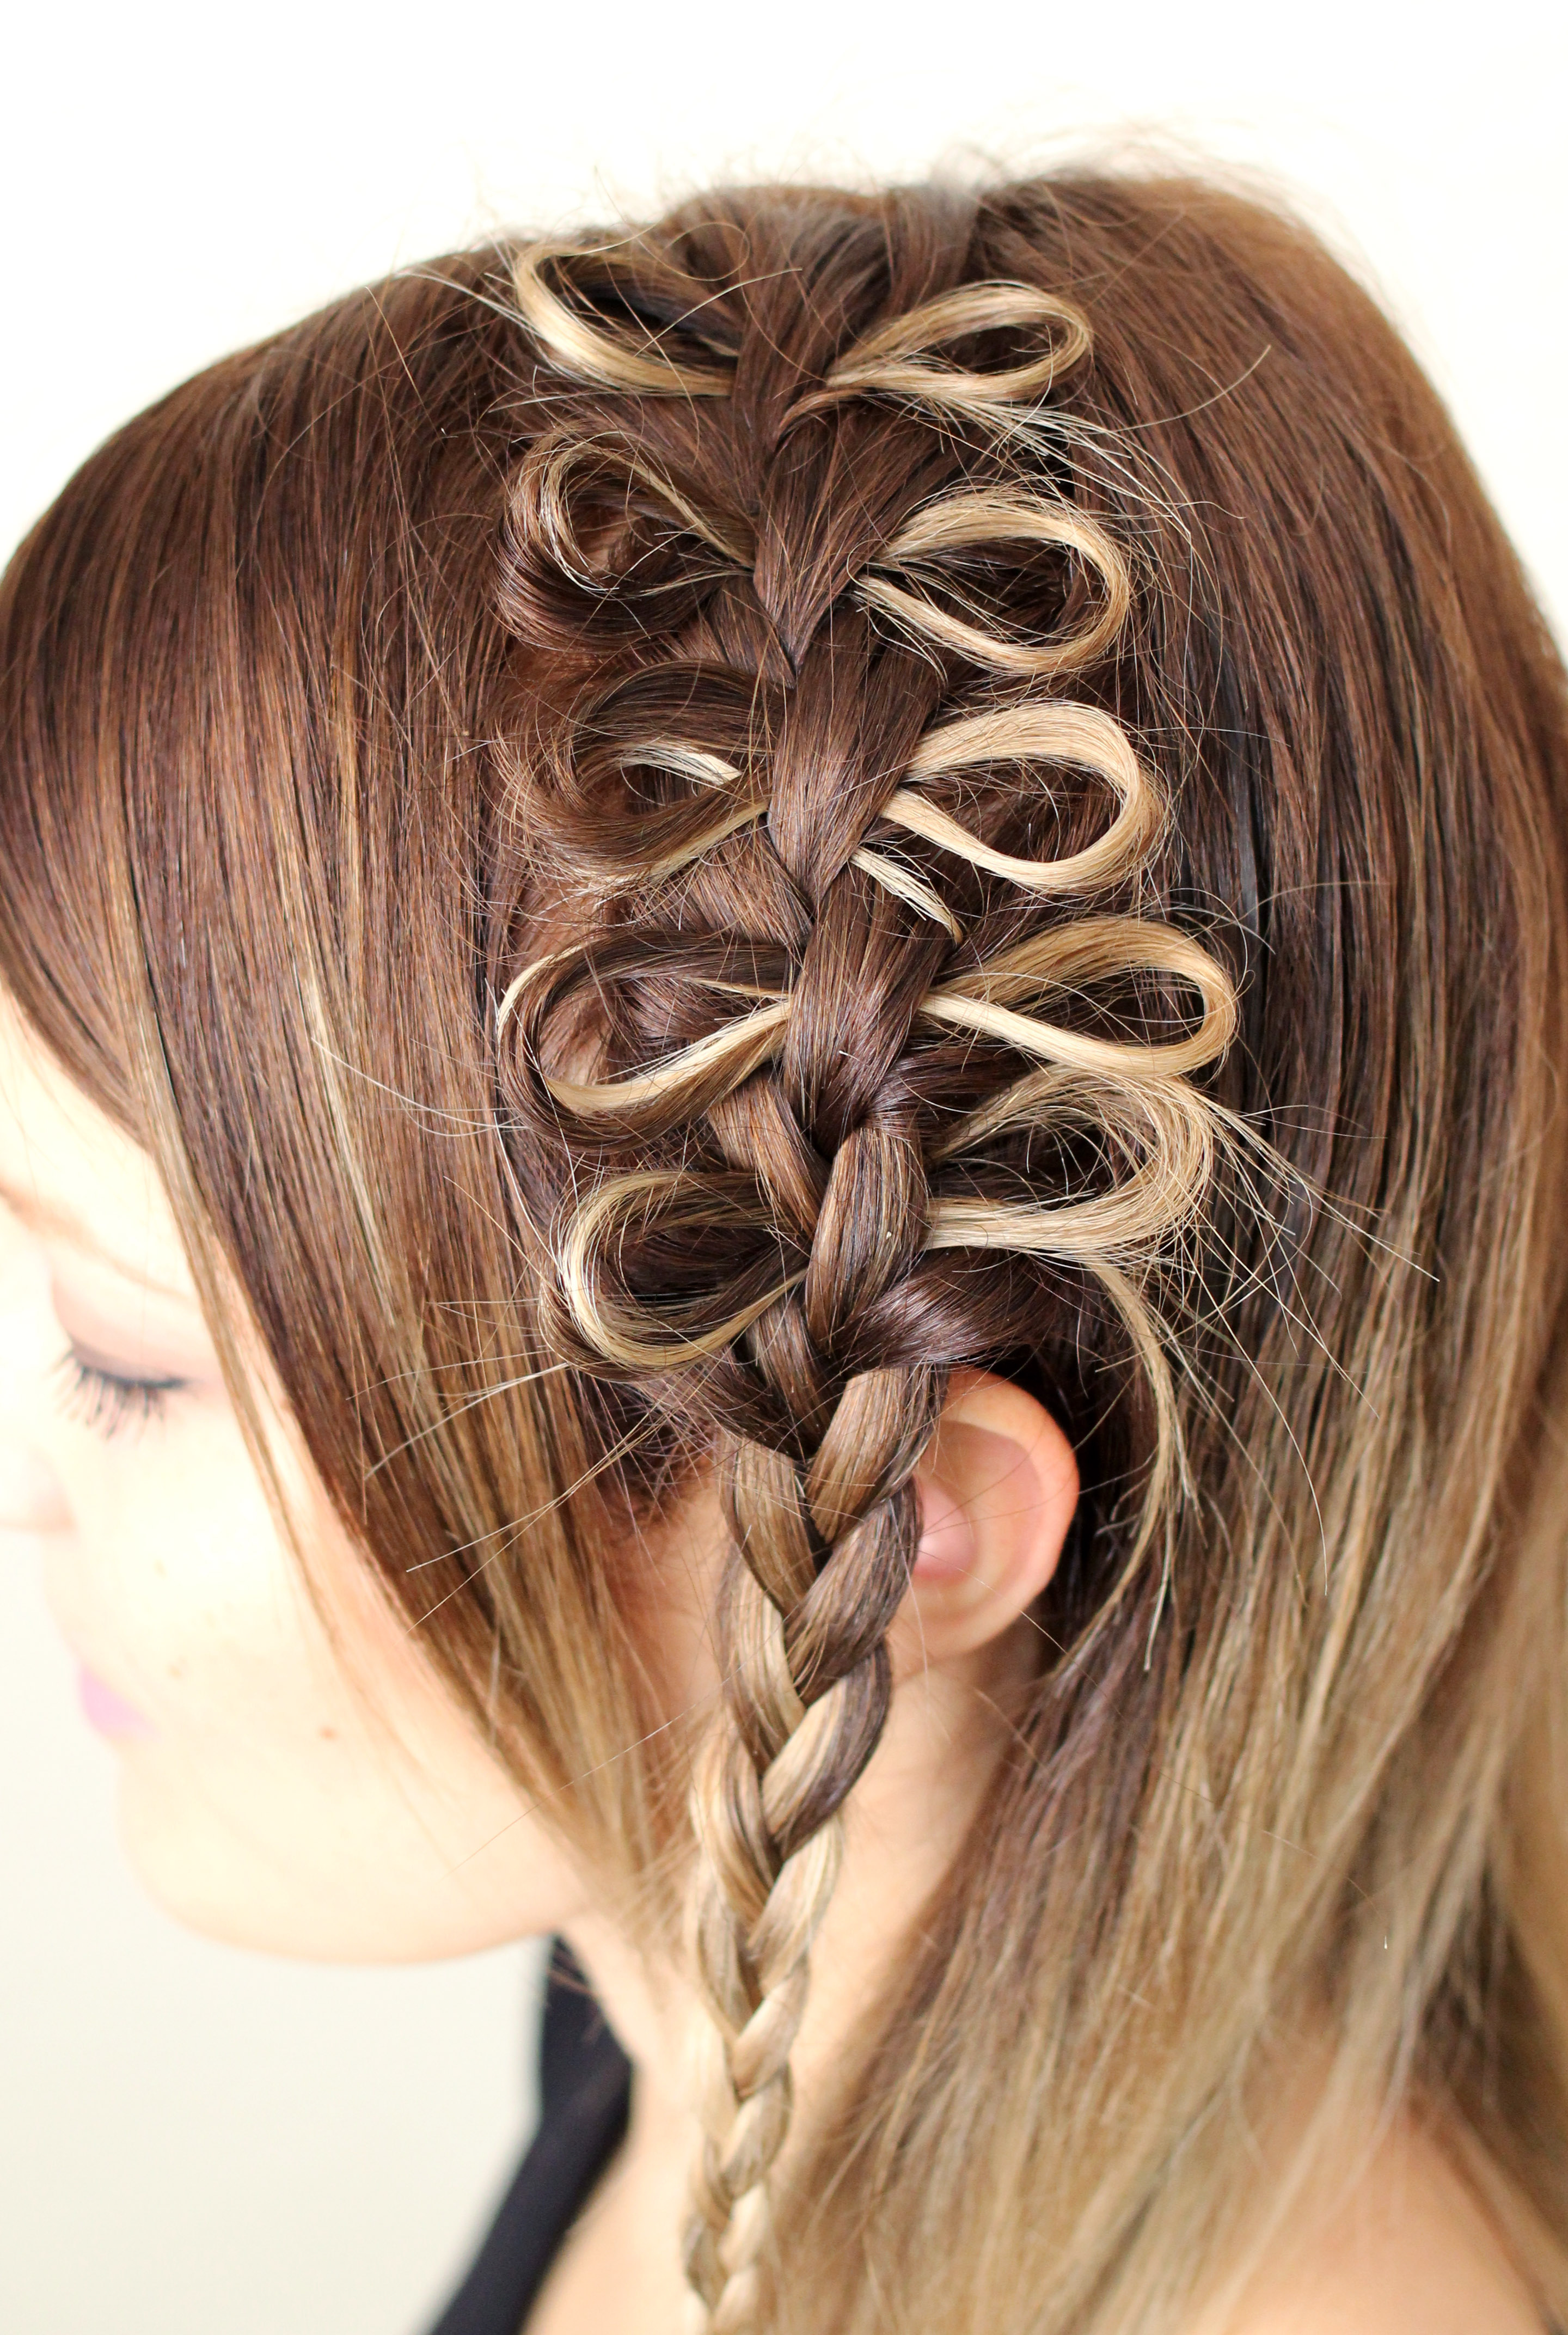 Astonishing How To Style A Bow Braid A Beautiful Mess Hairstyles For Women Draintrainus